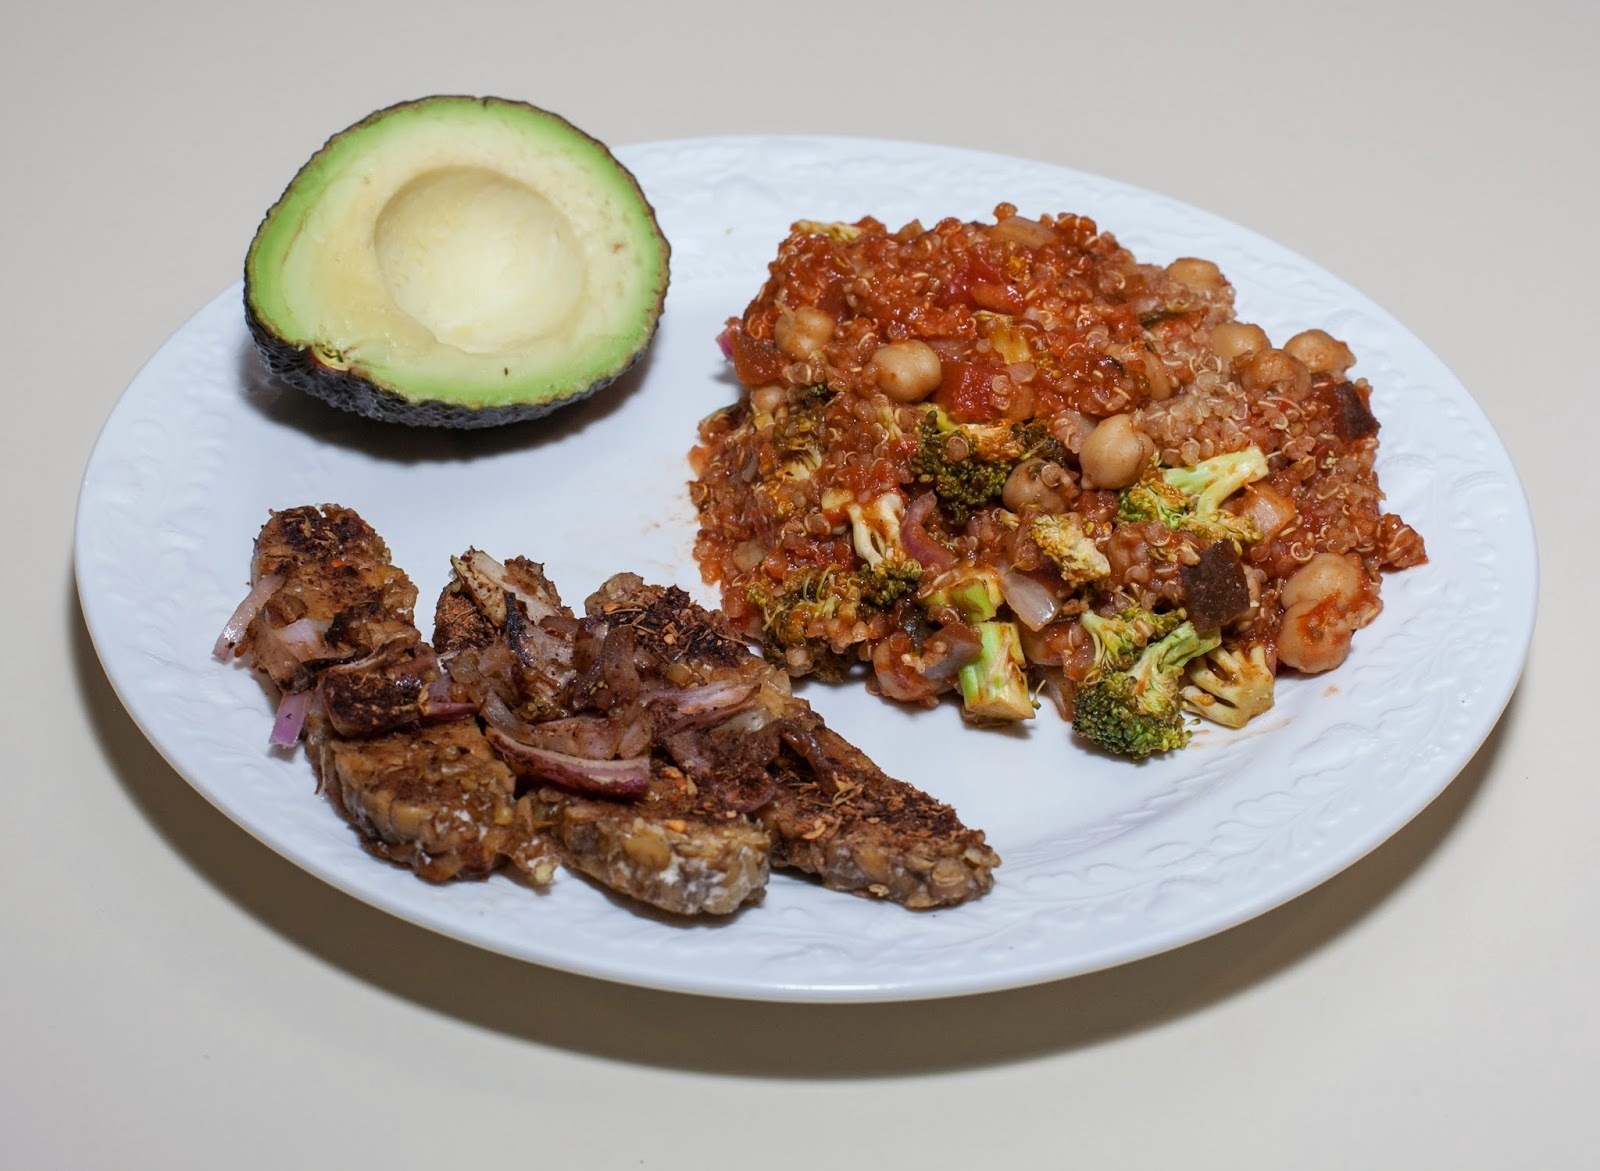 Cooking chickpeas in a pressure cooker: Chickpea with Quinoa, Broccoli, and Marinara served with Jerk Tempeh and Avocado